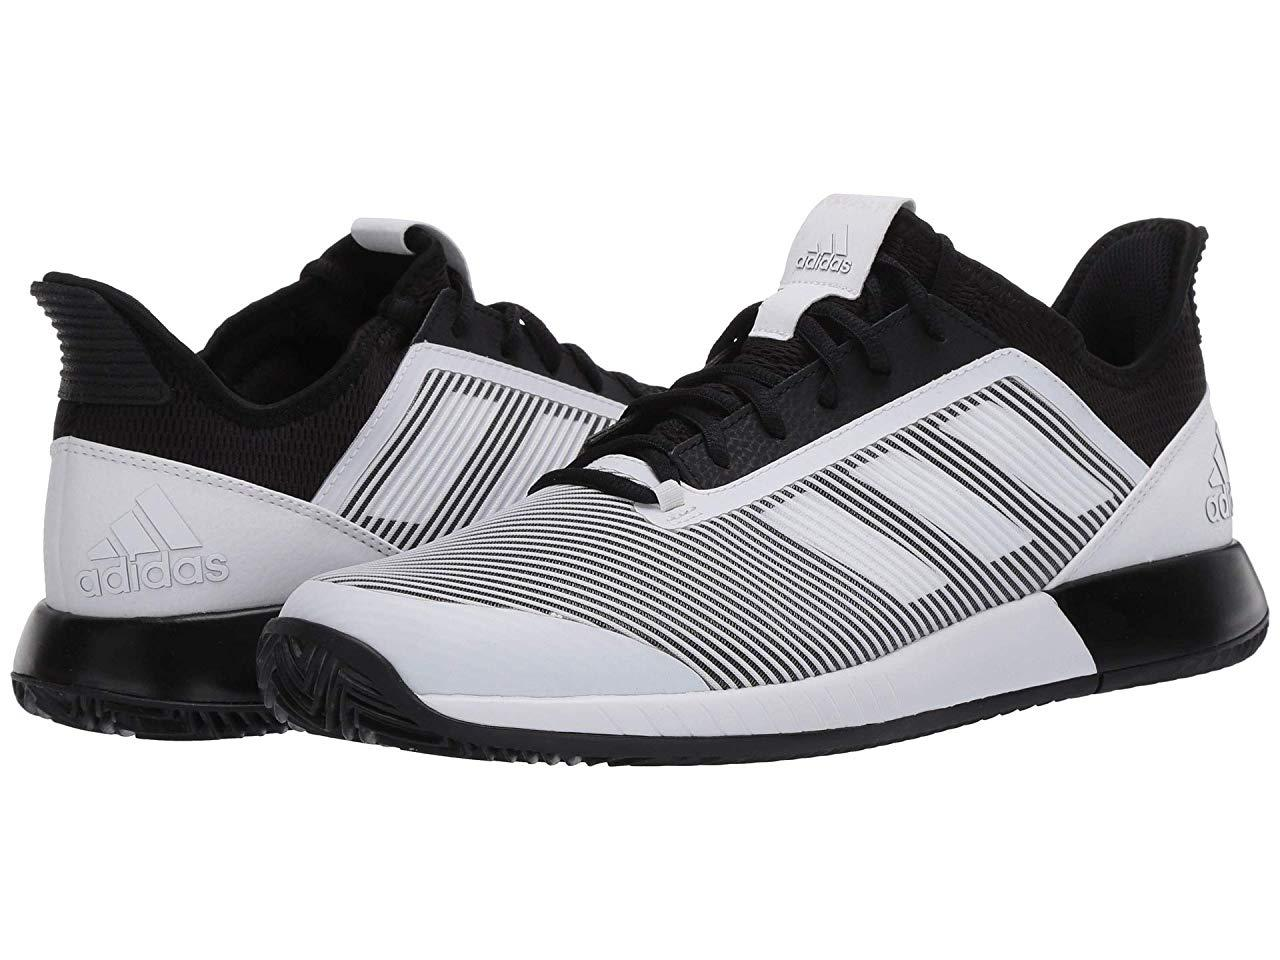 Кроссовки/Кеды adidas Defiant Bounce 2 Core Black/Footwear White/Core Black